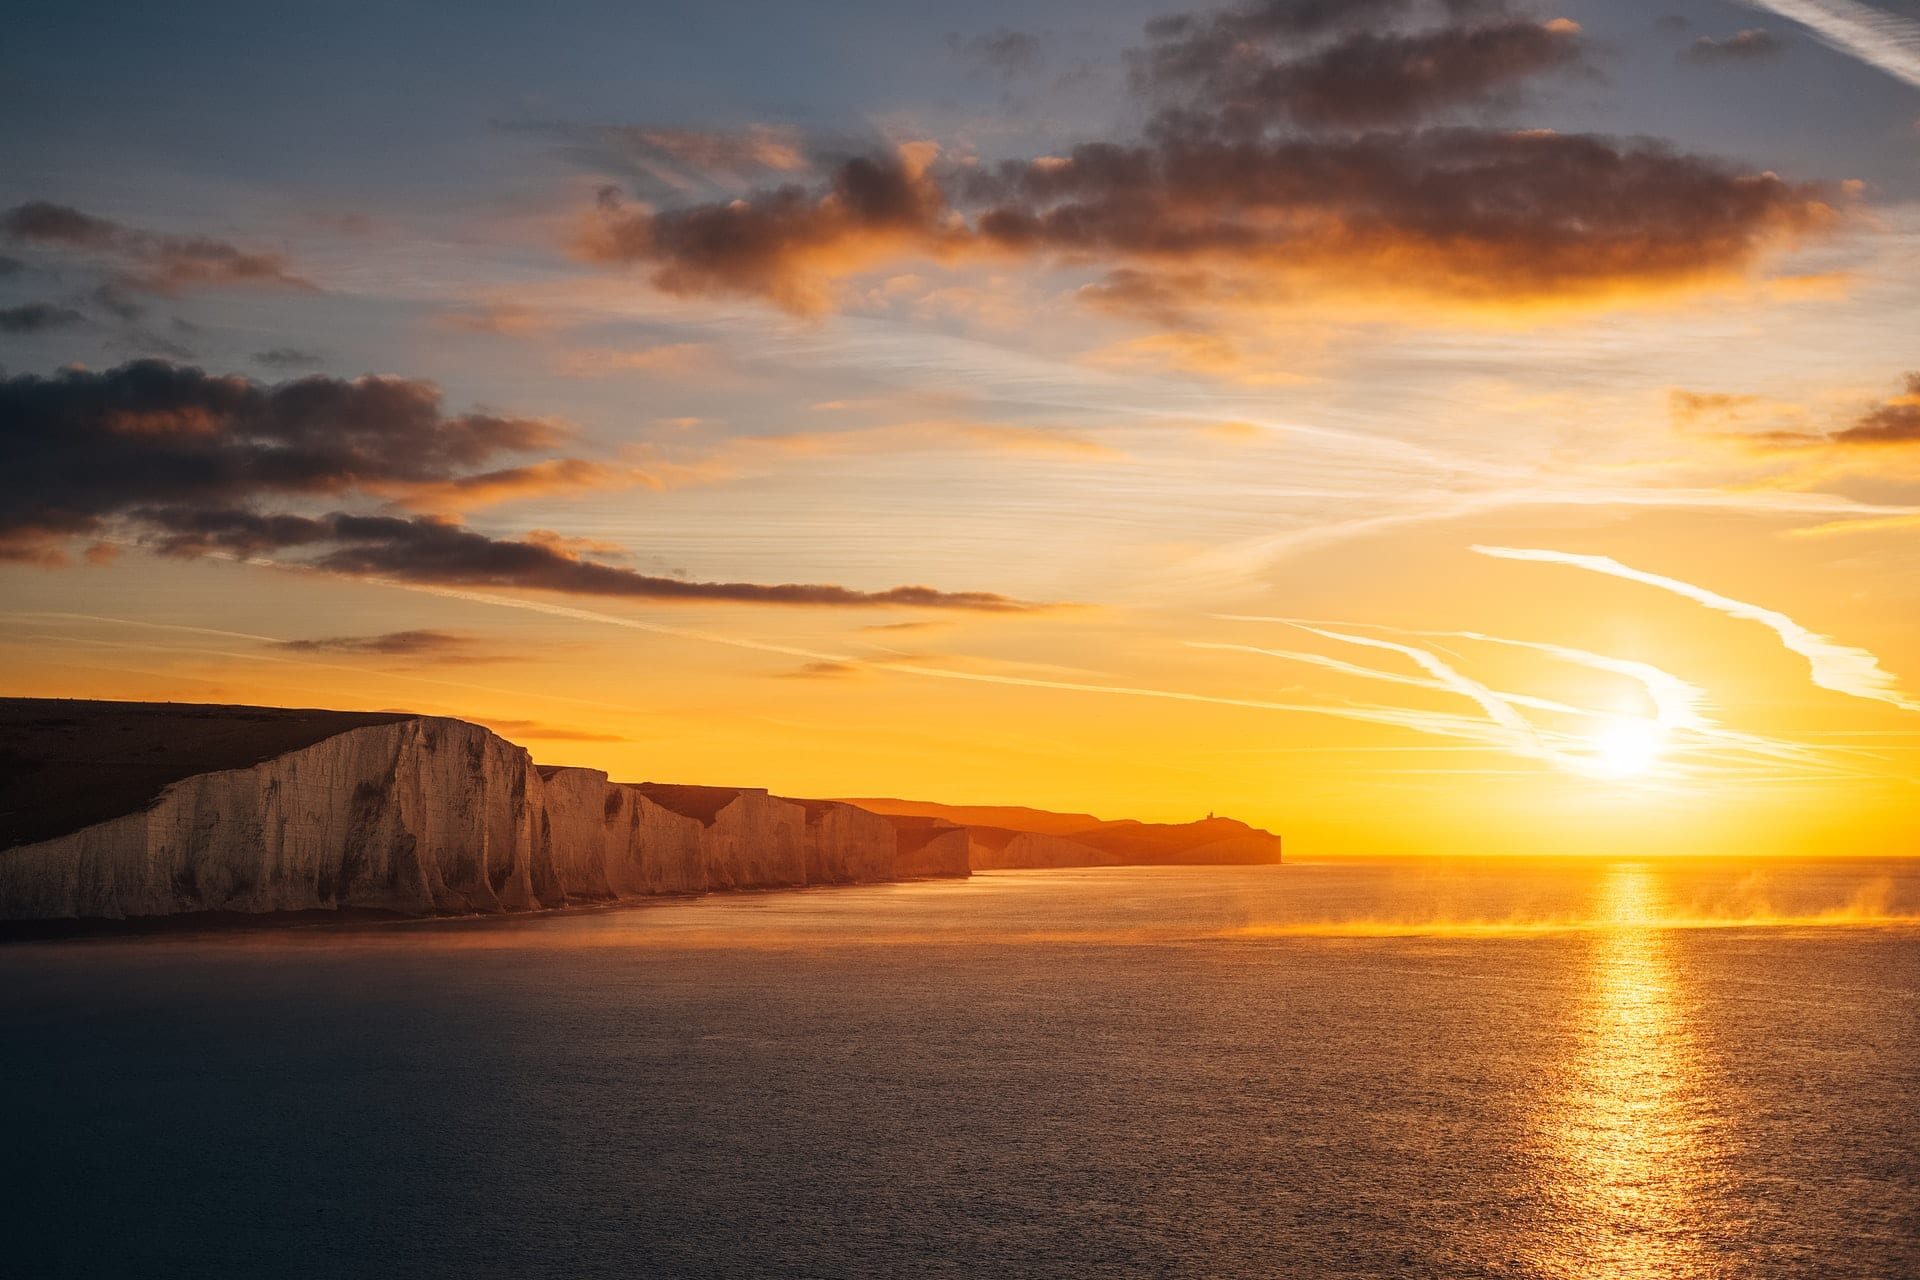 sunset-at-seven-sisters-cliffs-and-sea-english-channel-south-downs-east-sussex-day-trips-from-london-by-car